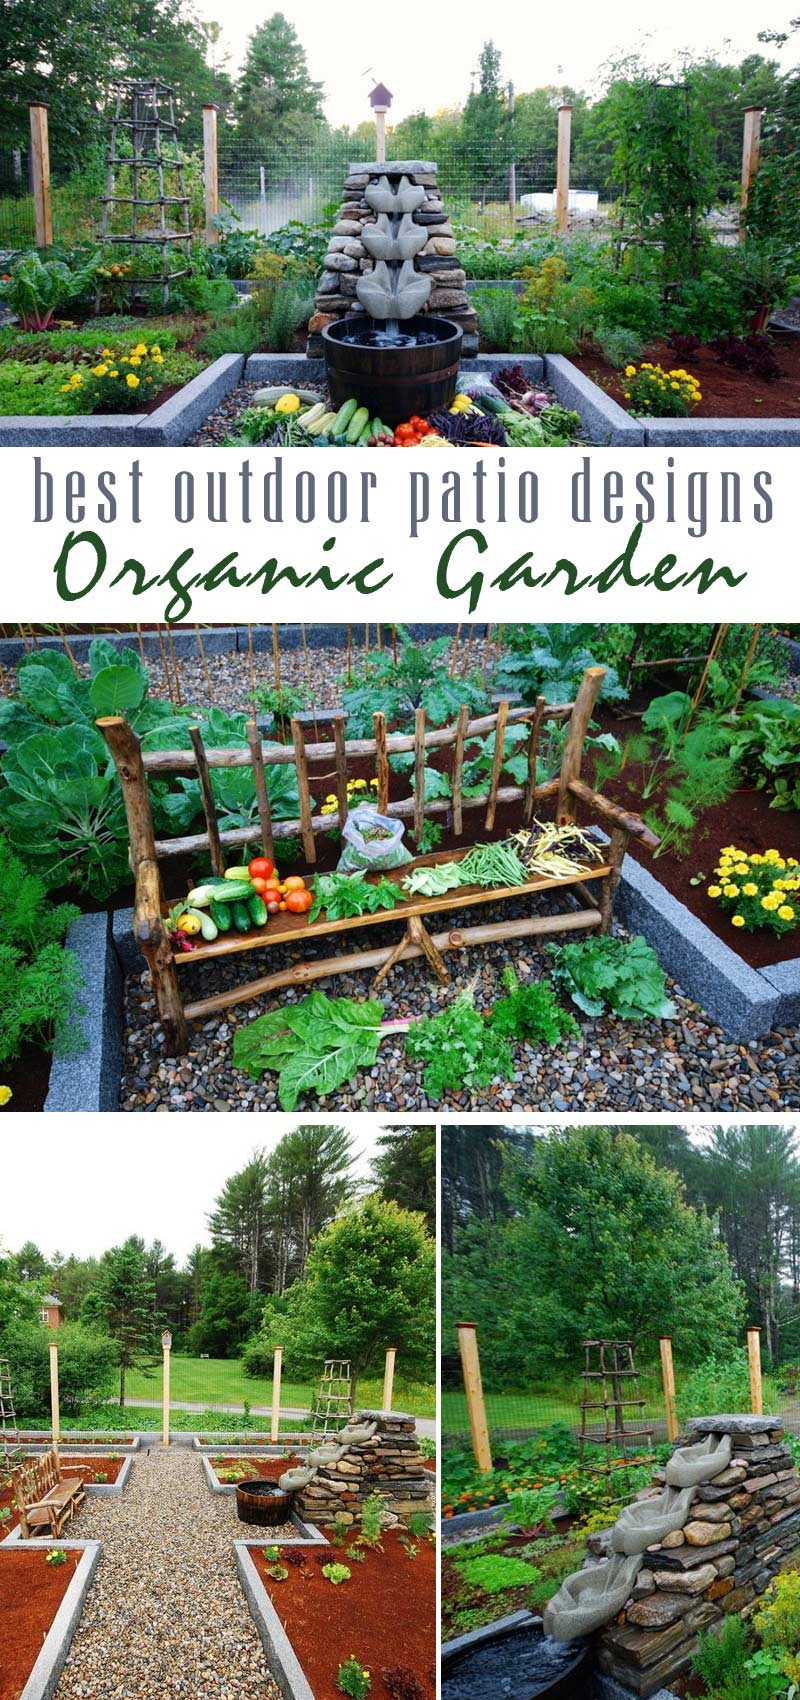 bio-dynamic garden - best outdoor patio designs by craft-mart